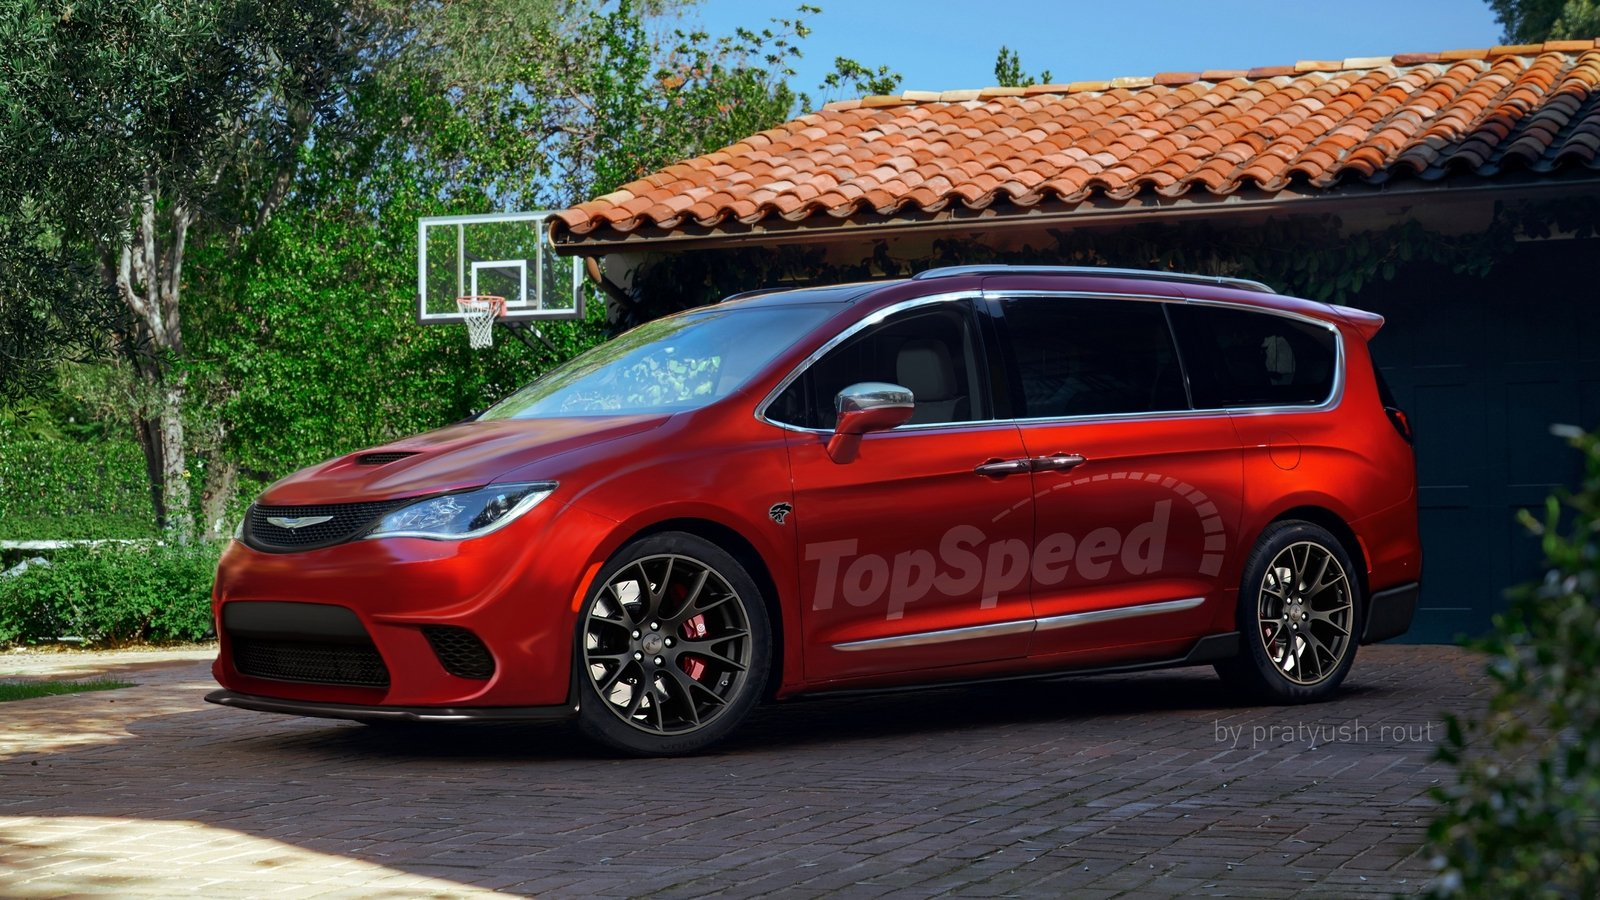 2017 Chrysler Pacifica Hellcat Top Speed